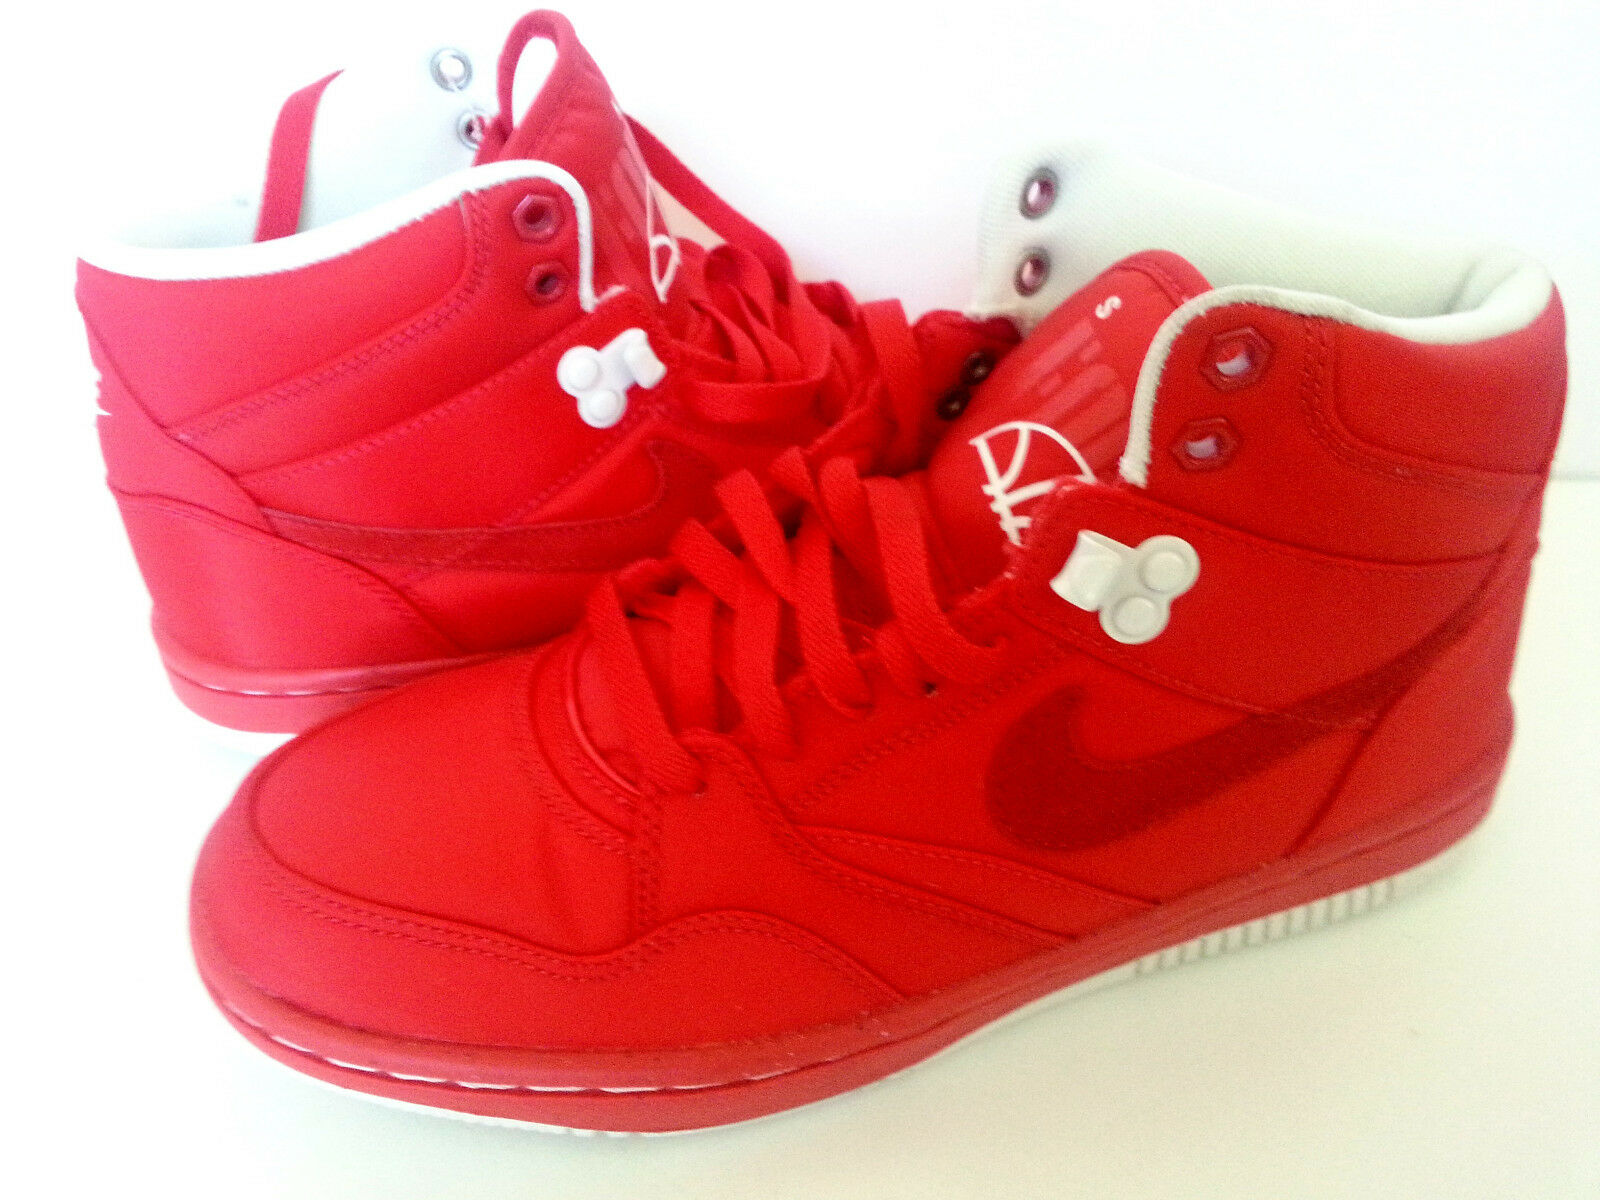 New Nike Men's Sky Red Force 88 Mid TXT Action Red Sky 488285-600 Sz 7US,40 EUR,25 cm 6160f2